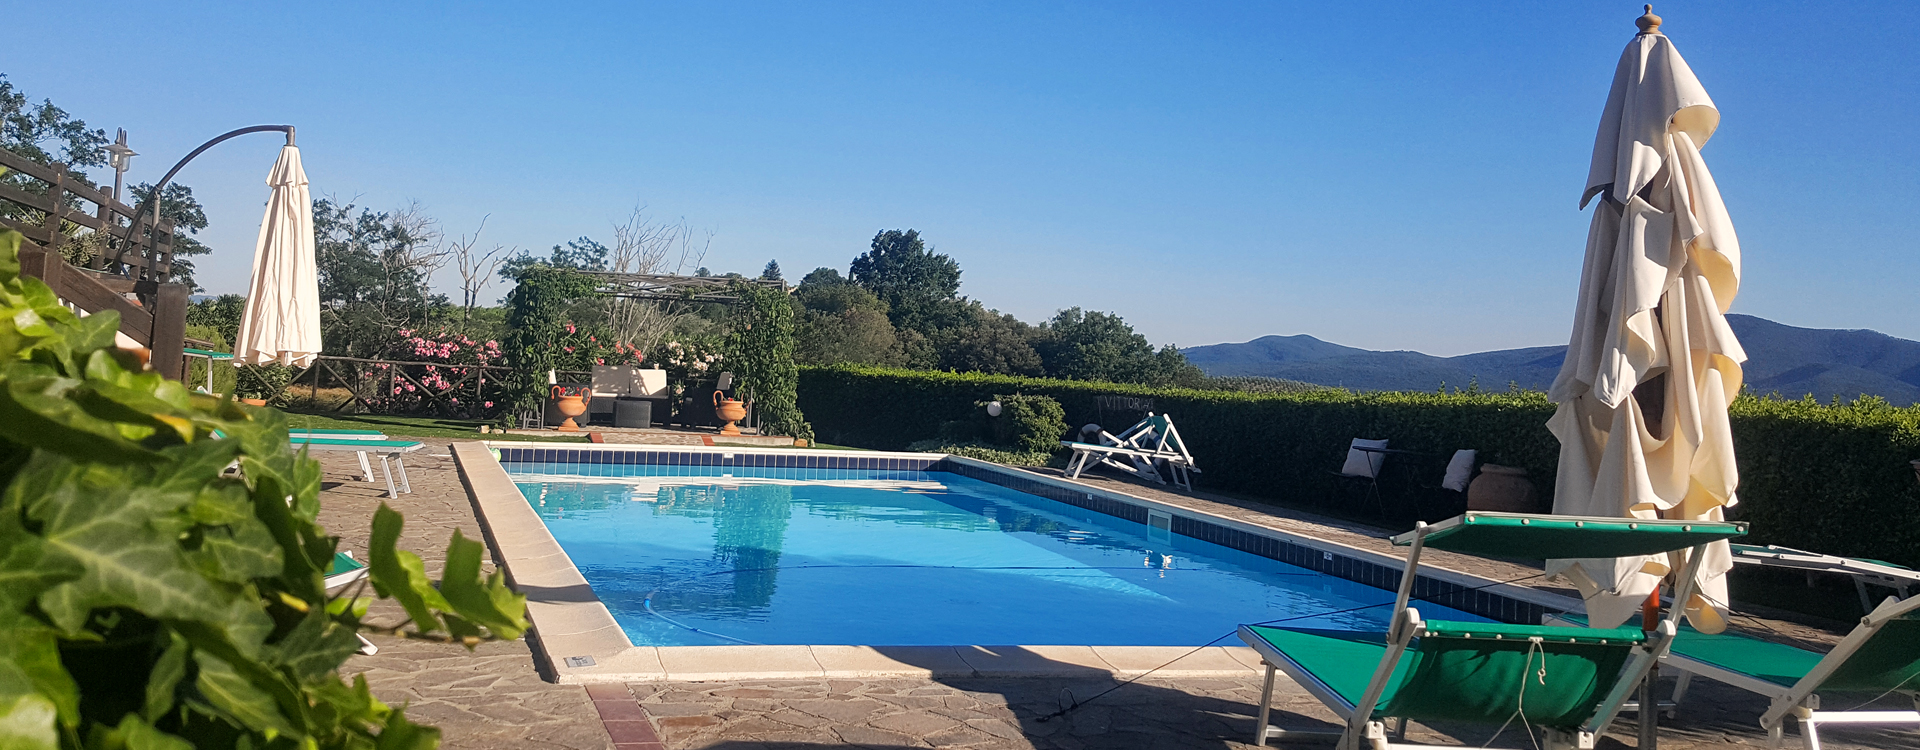 Casa Armini - Swimming pool view